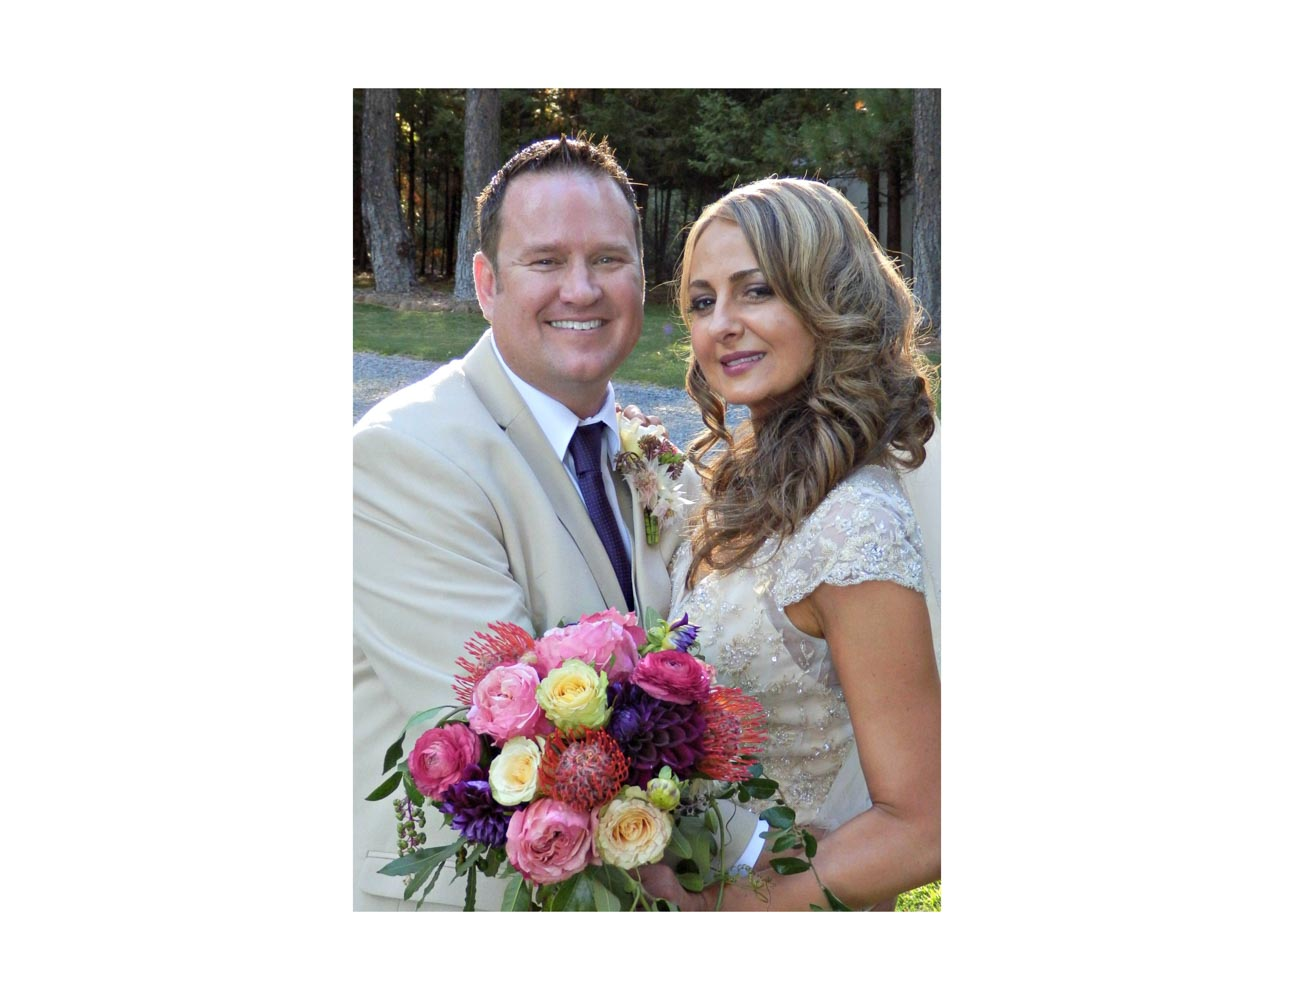 Closeup of smiling groom and bride, holding bouquet, in outdoor wedding location